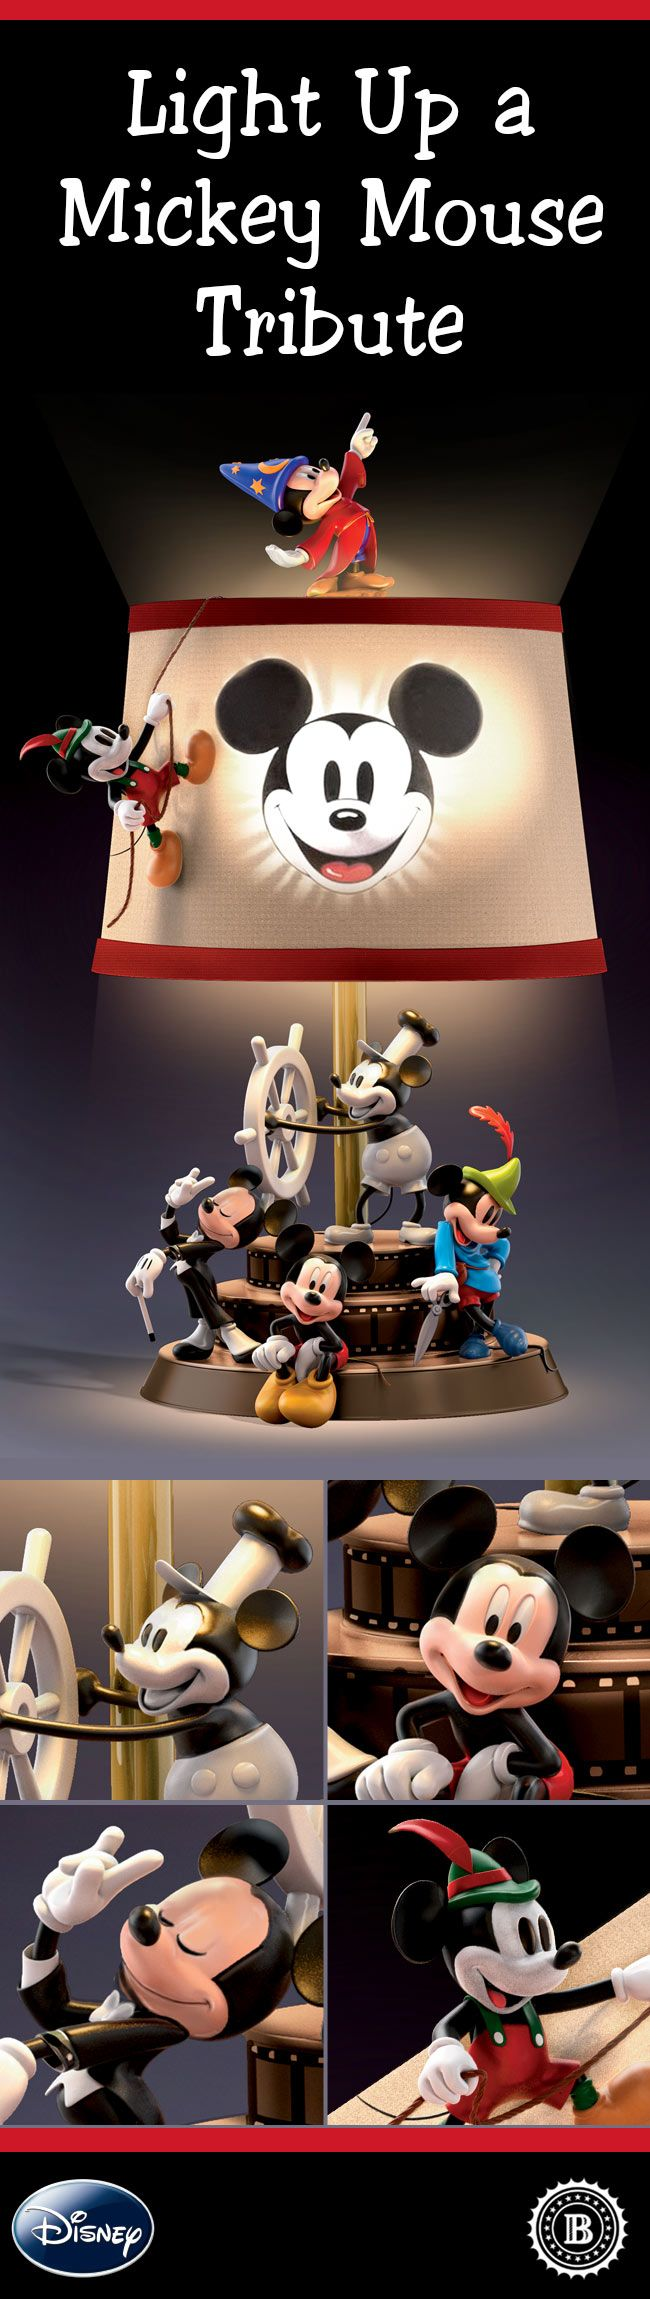 Shine new light on Mickey Mouse's fun-filled adventures through the years. This magical sculptural table lamp features 9 hand-painted Mickey characters from throughout Disney history, along with iconic artwork on the fabric shade.